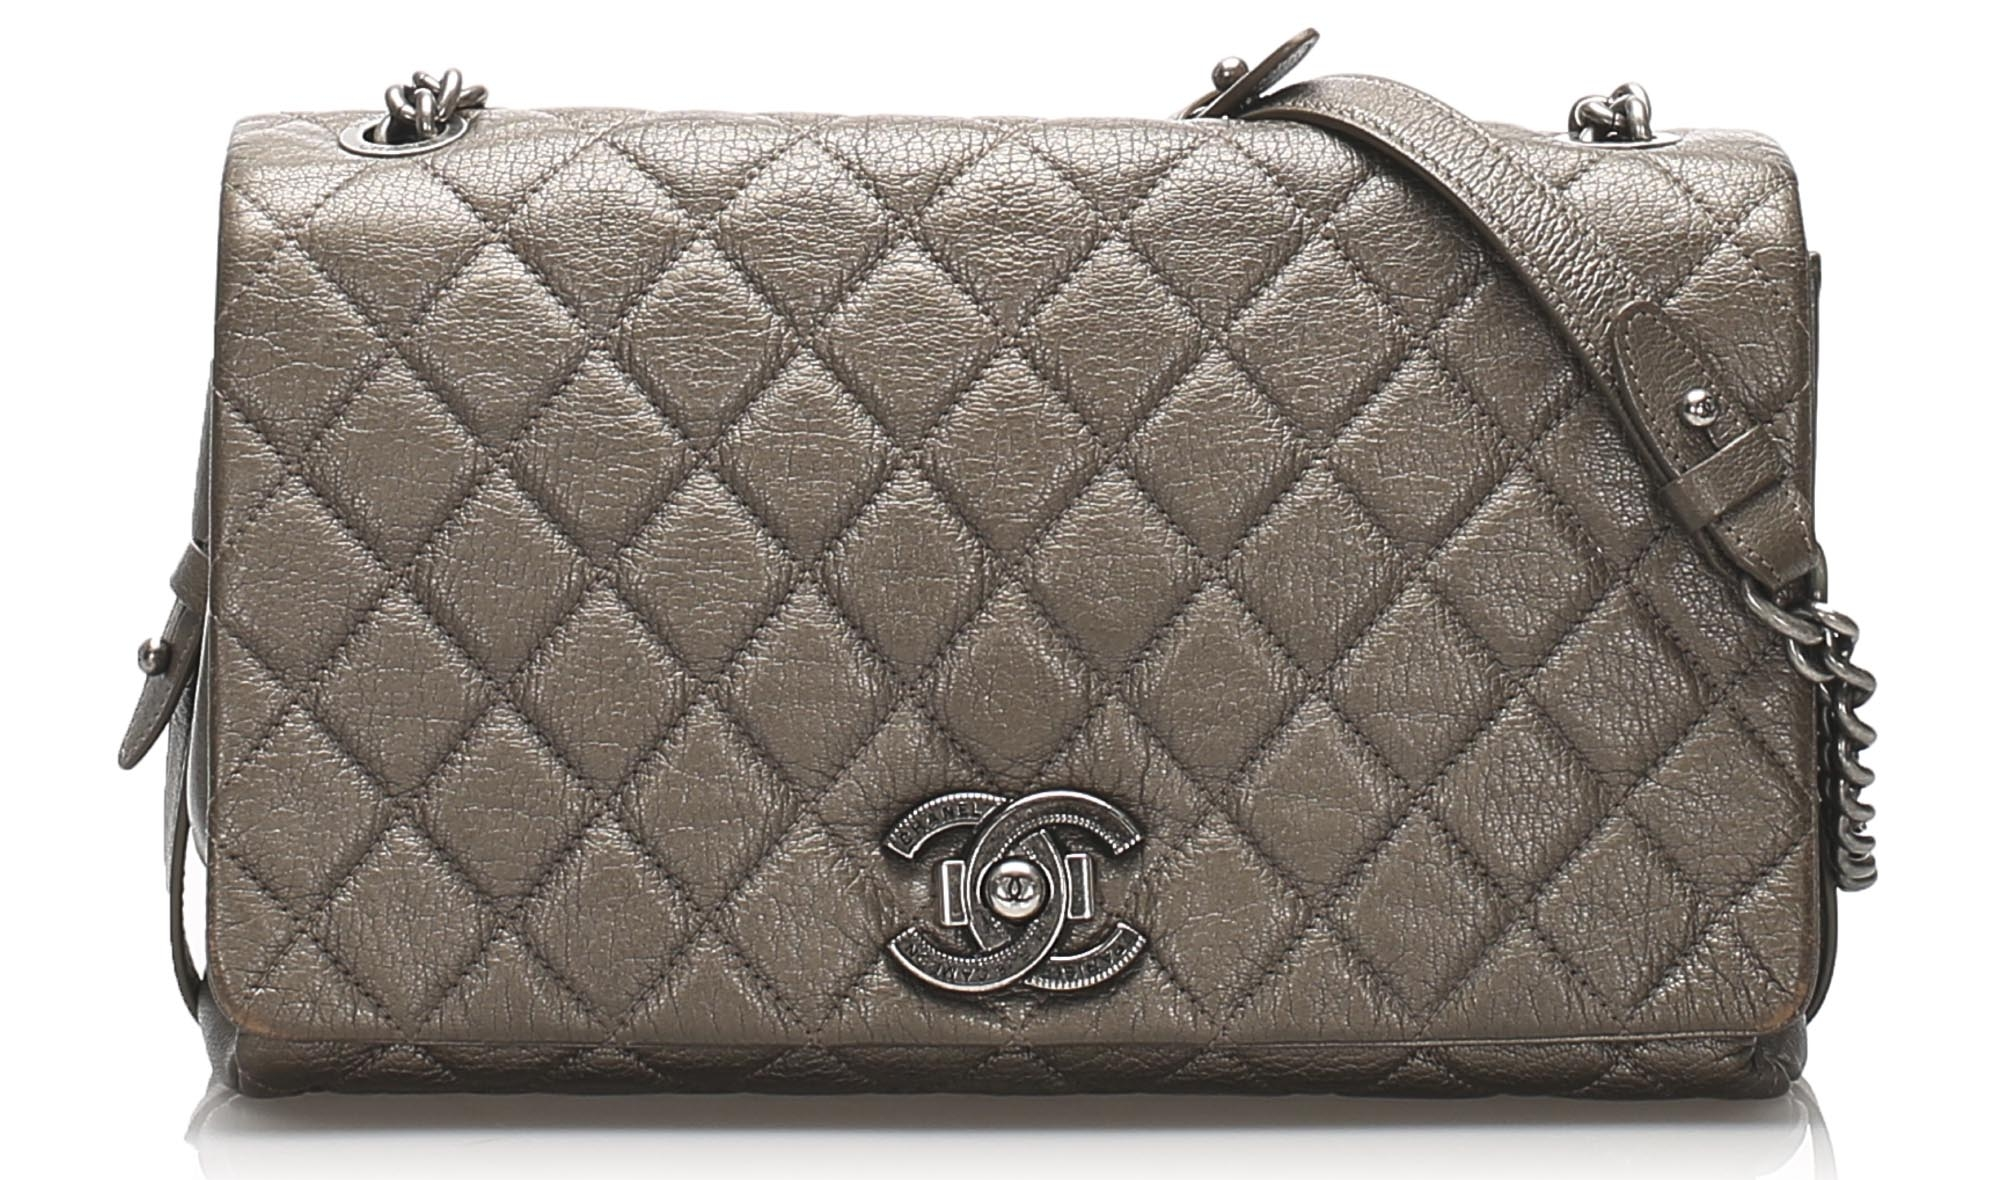 Chanel Large Matelasse Lambskin Flap Shoulder Bag